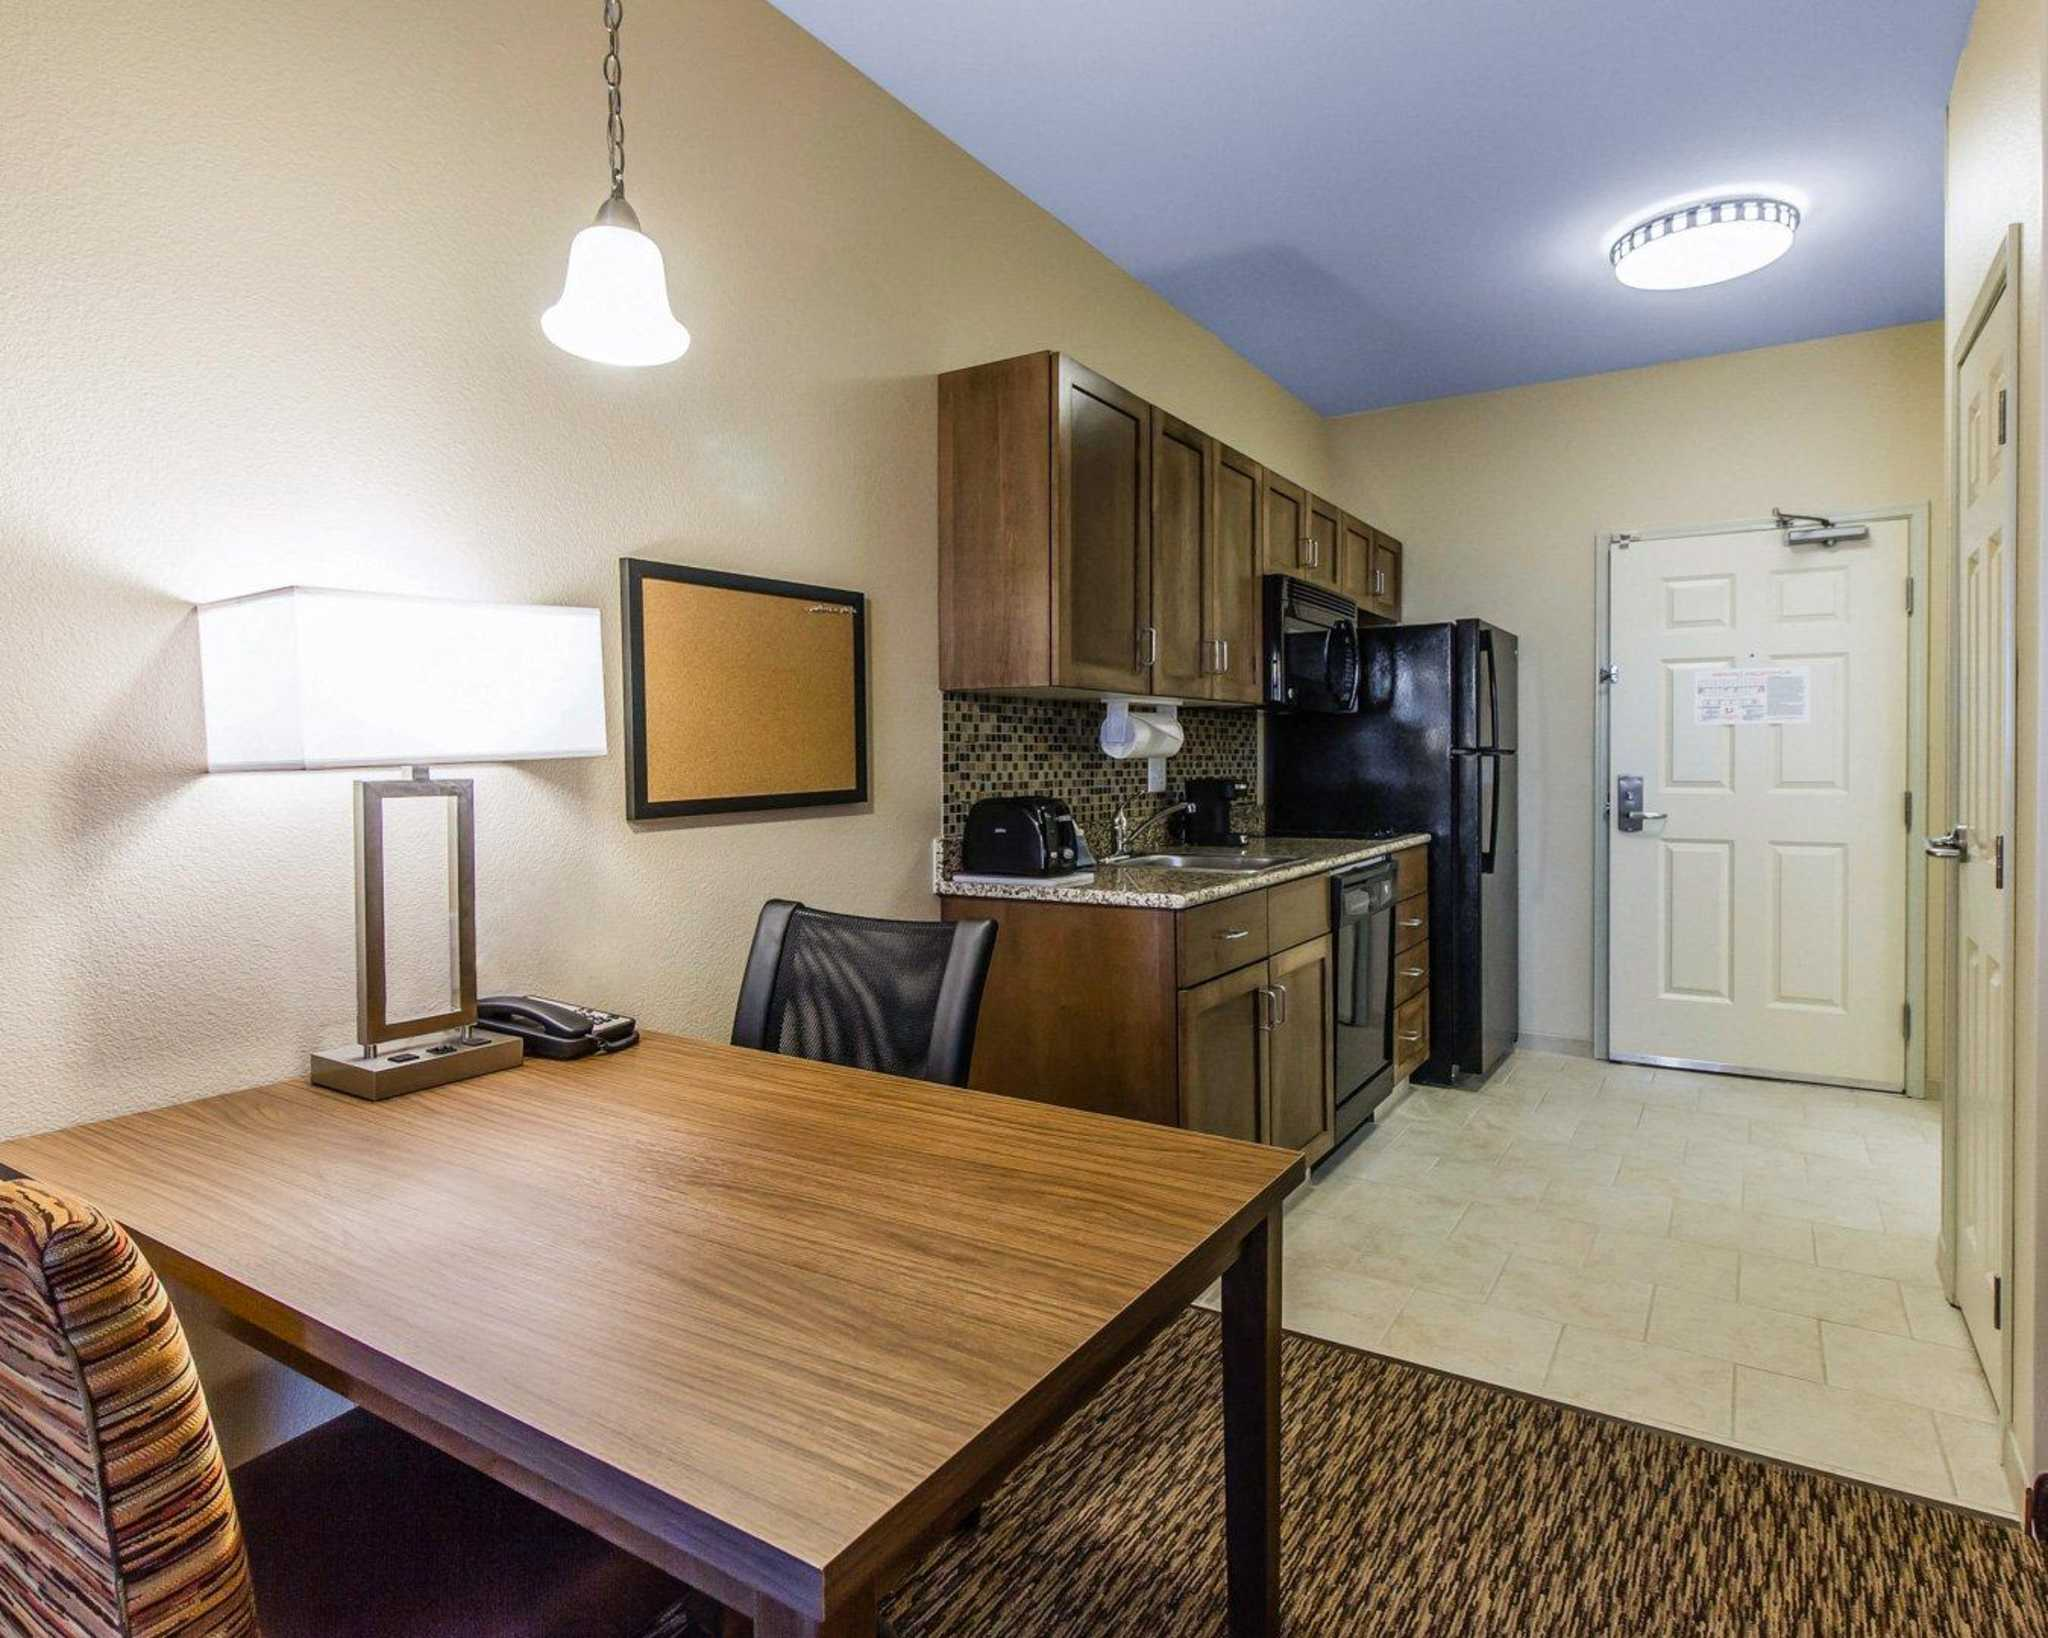 MainStay Suites Event Center image 14